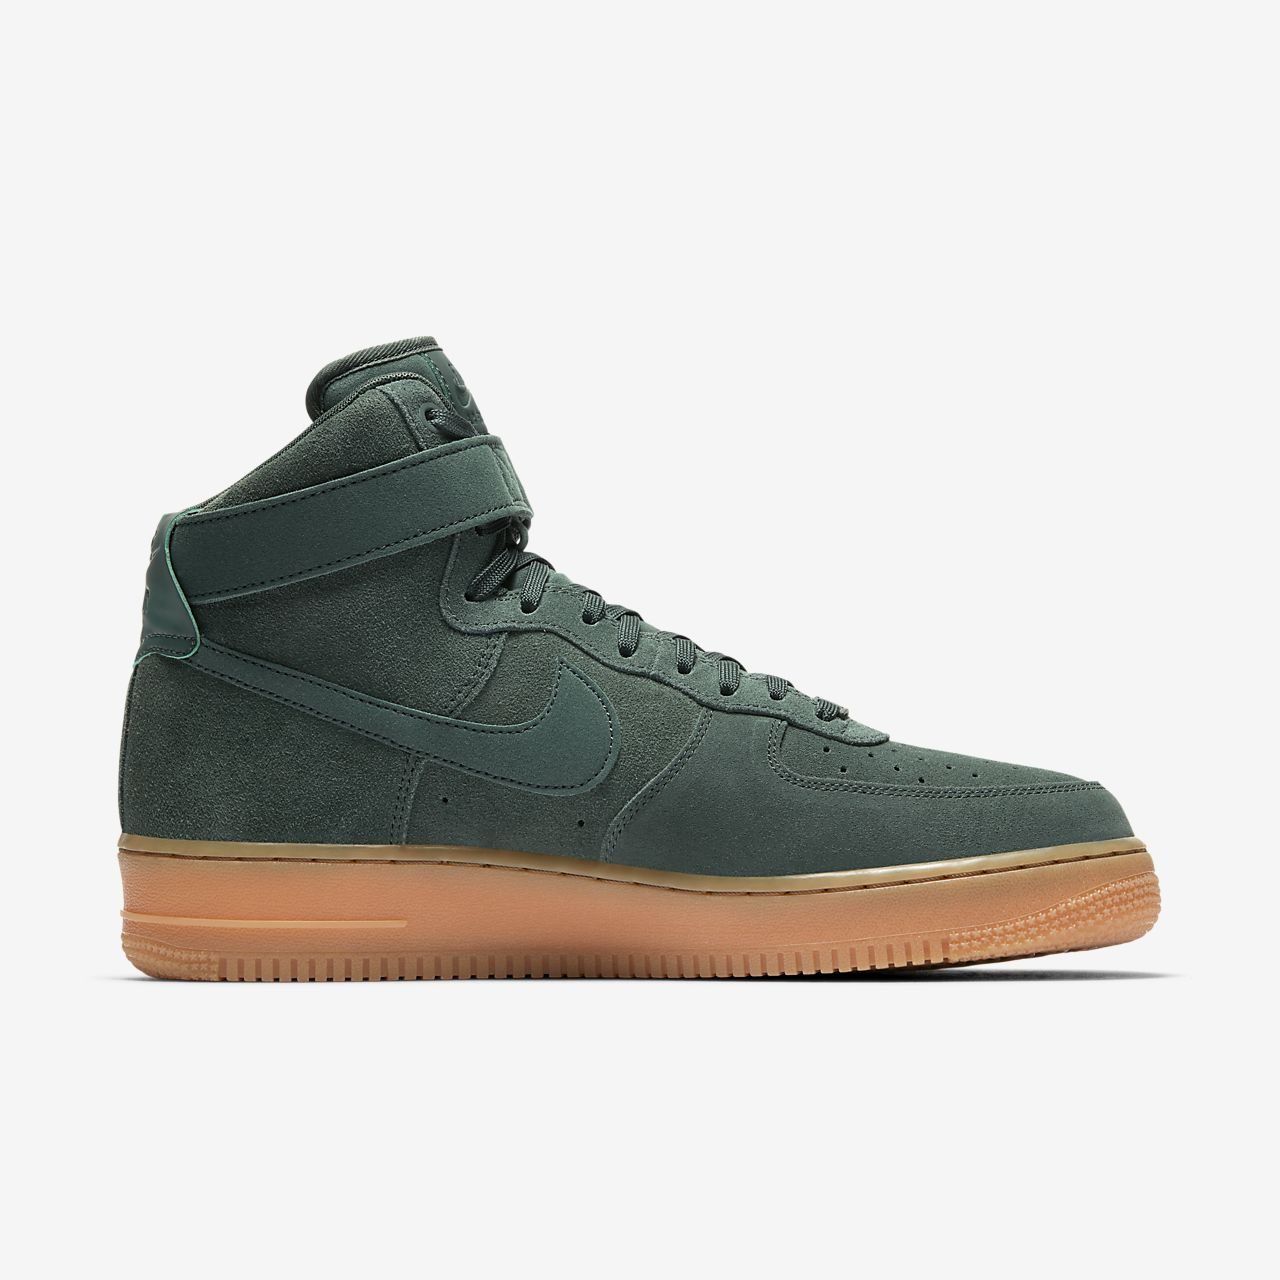 sports shoes b27e5 80de0 ... Nike Air Force 1 High 07 LV8 Suede Mens Shoe